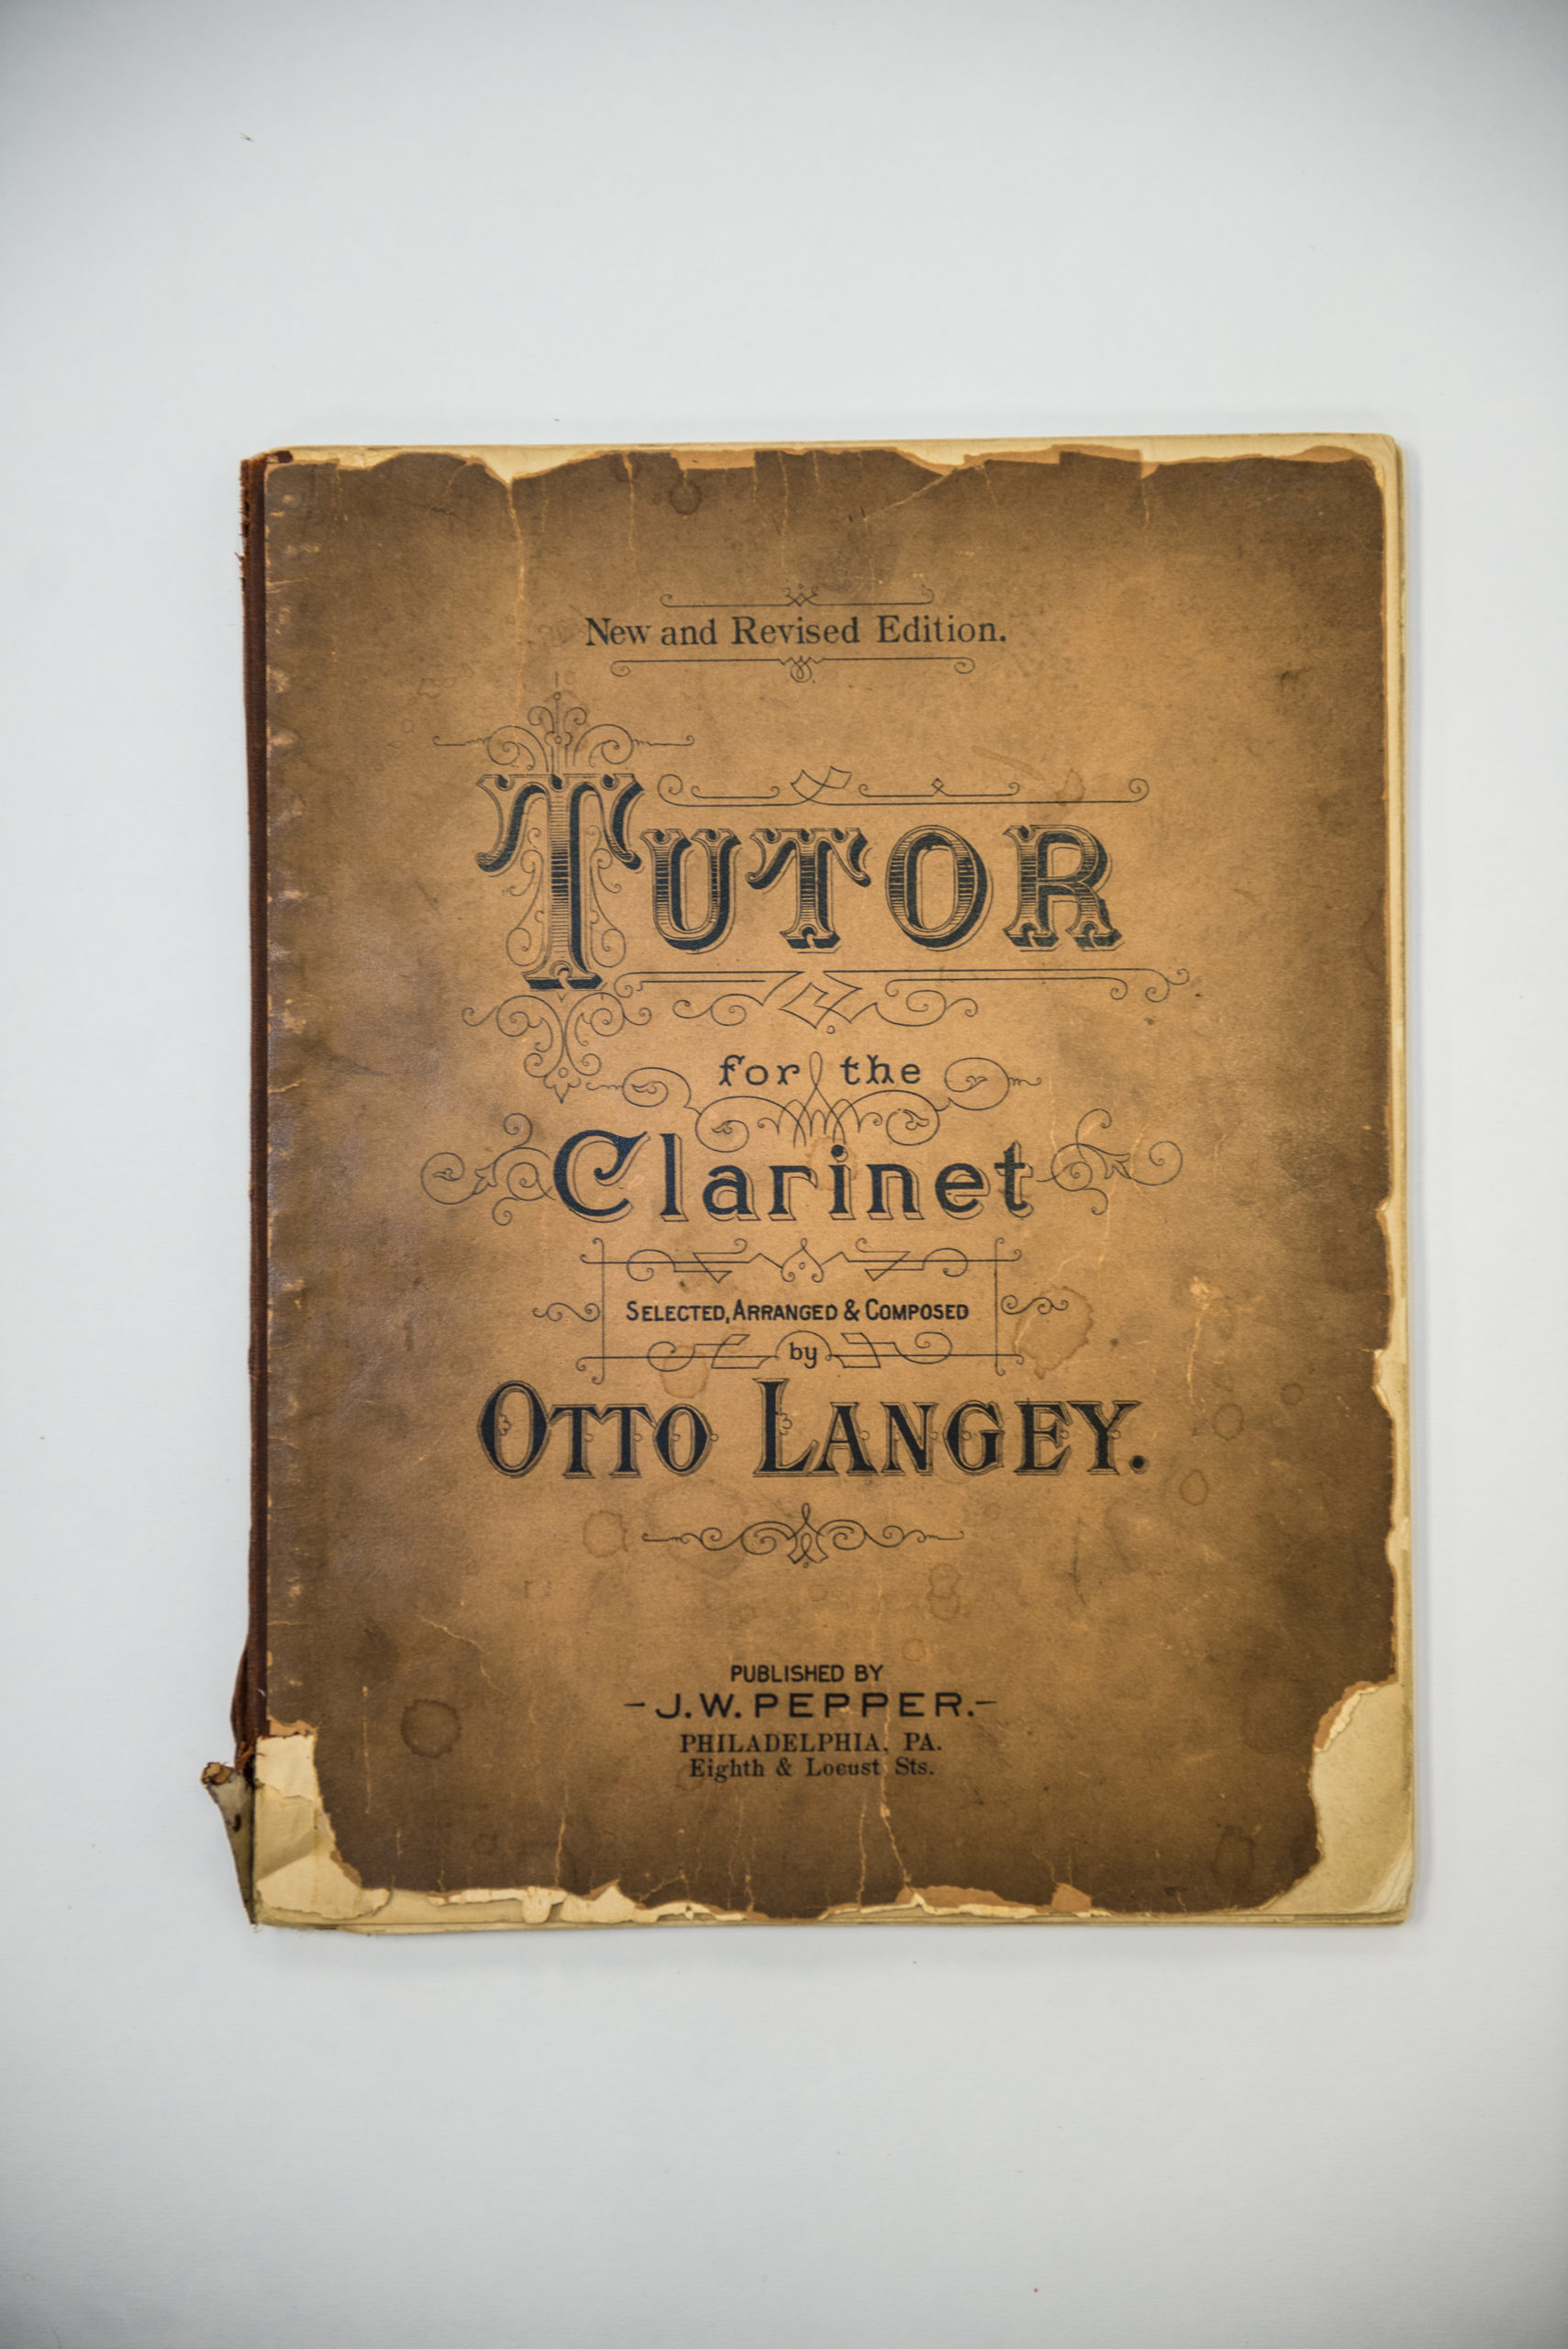 unknown - Tutor for the Clarinet, by Otto Langely (cover)